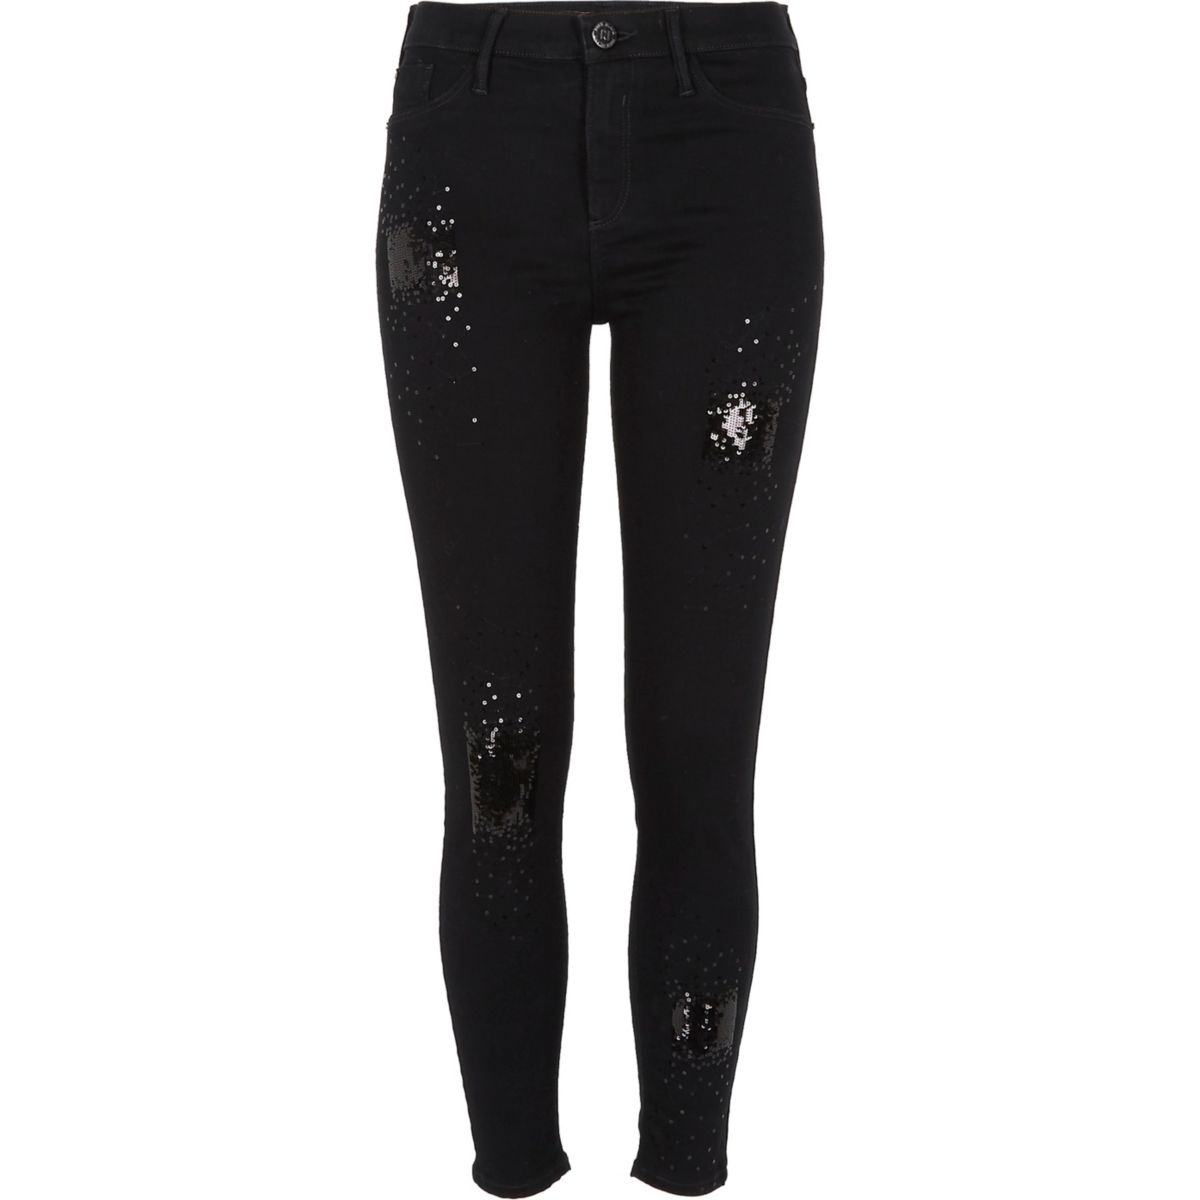 Black sequin embellished Molly jeggings